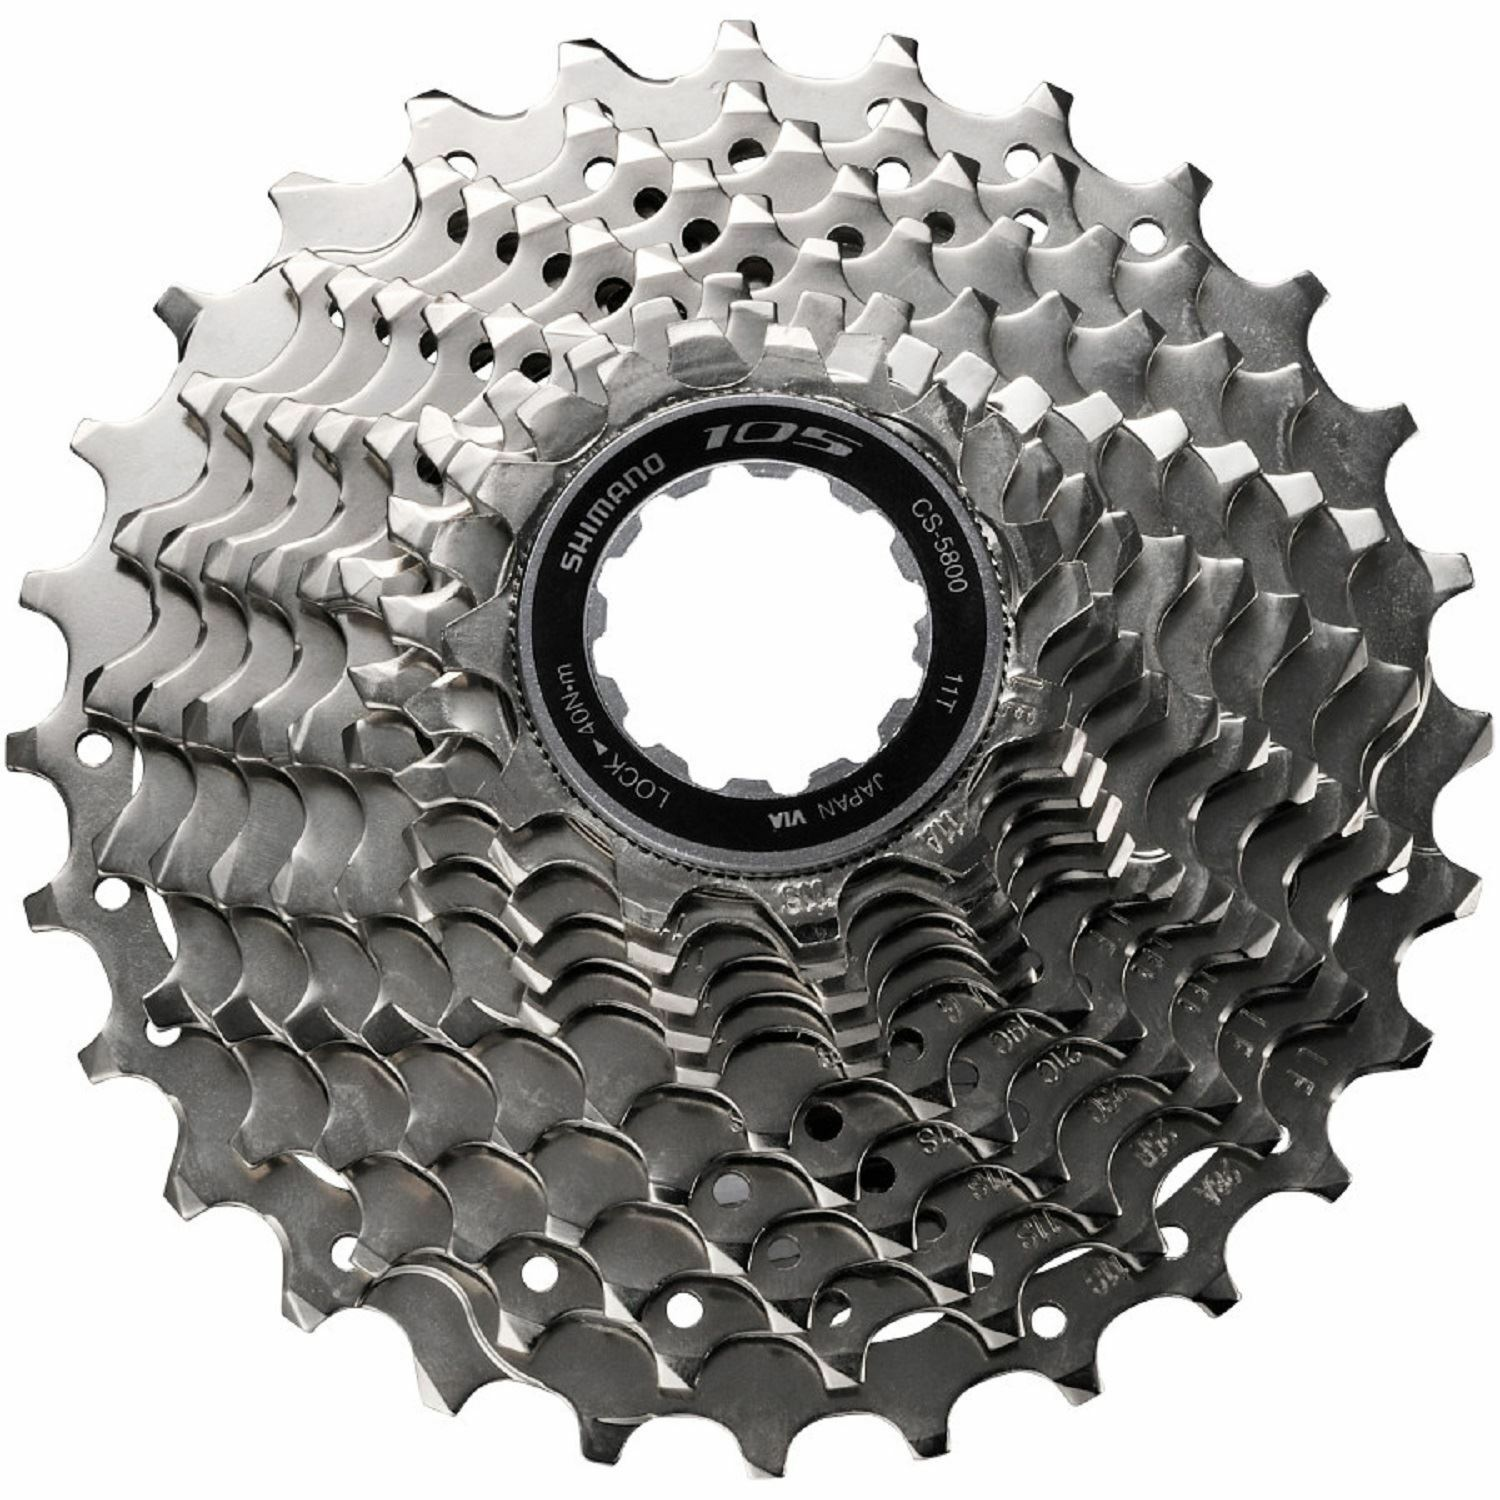 Shimano 105 CS-5800 Road Bike Cassette 12-25T 11 Speed New In Retail Box